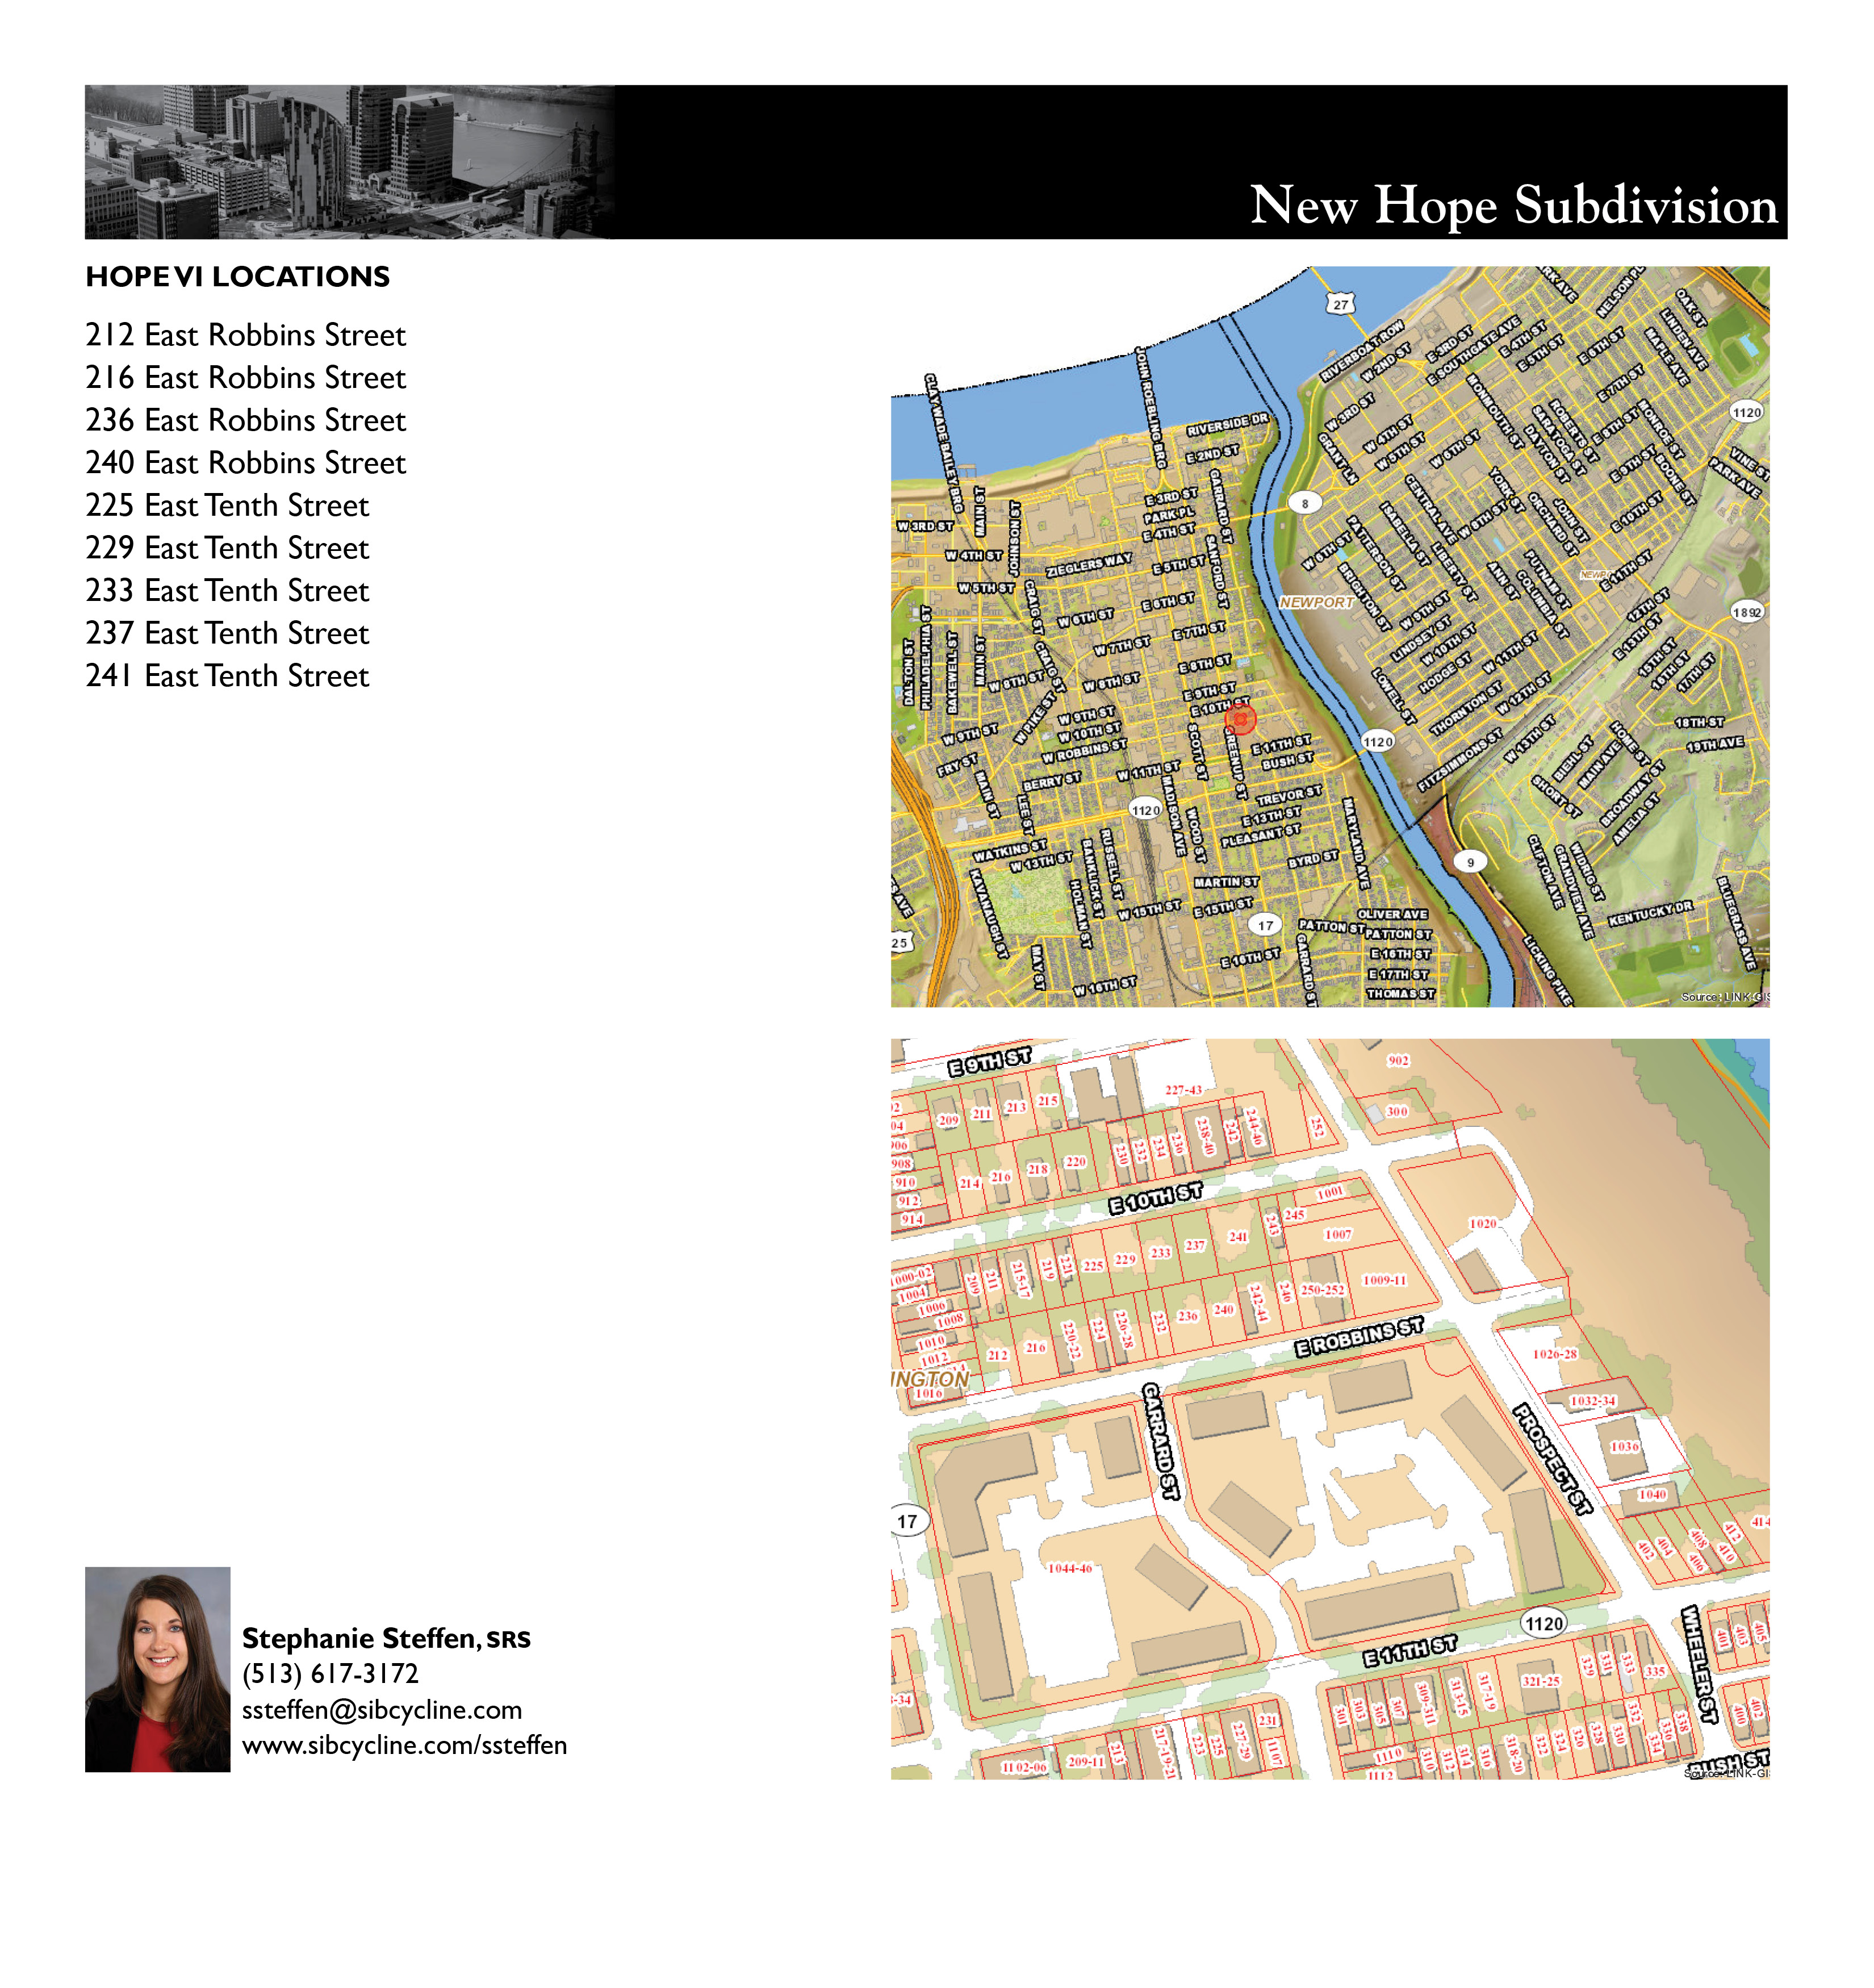 New Hope Subdivision Location Rendering